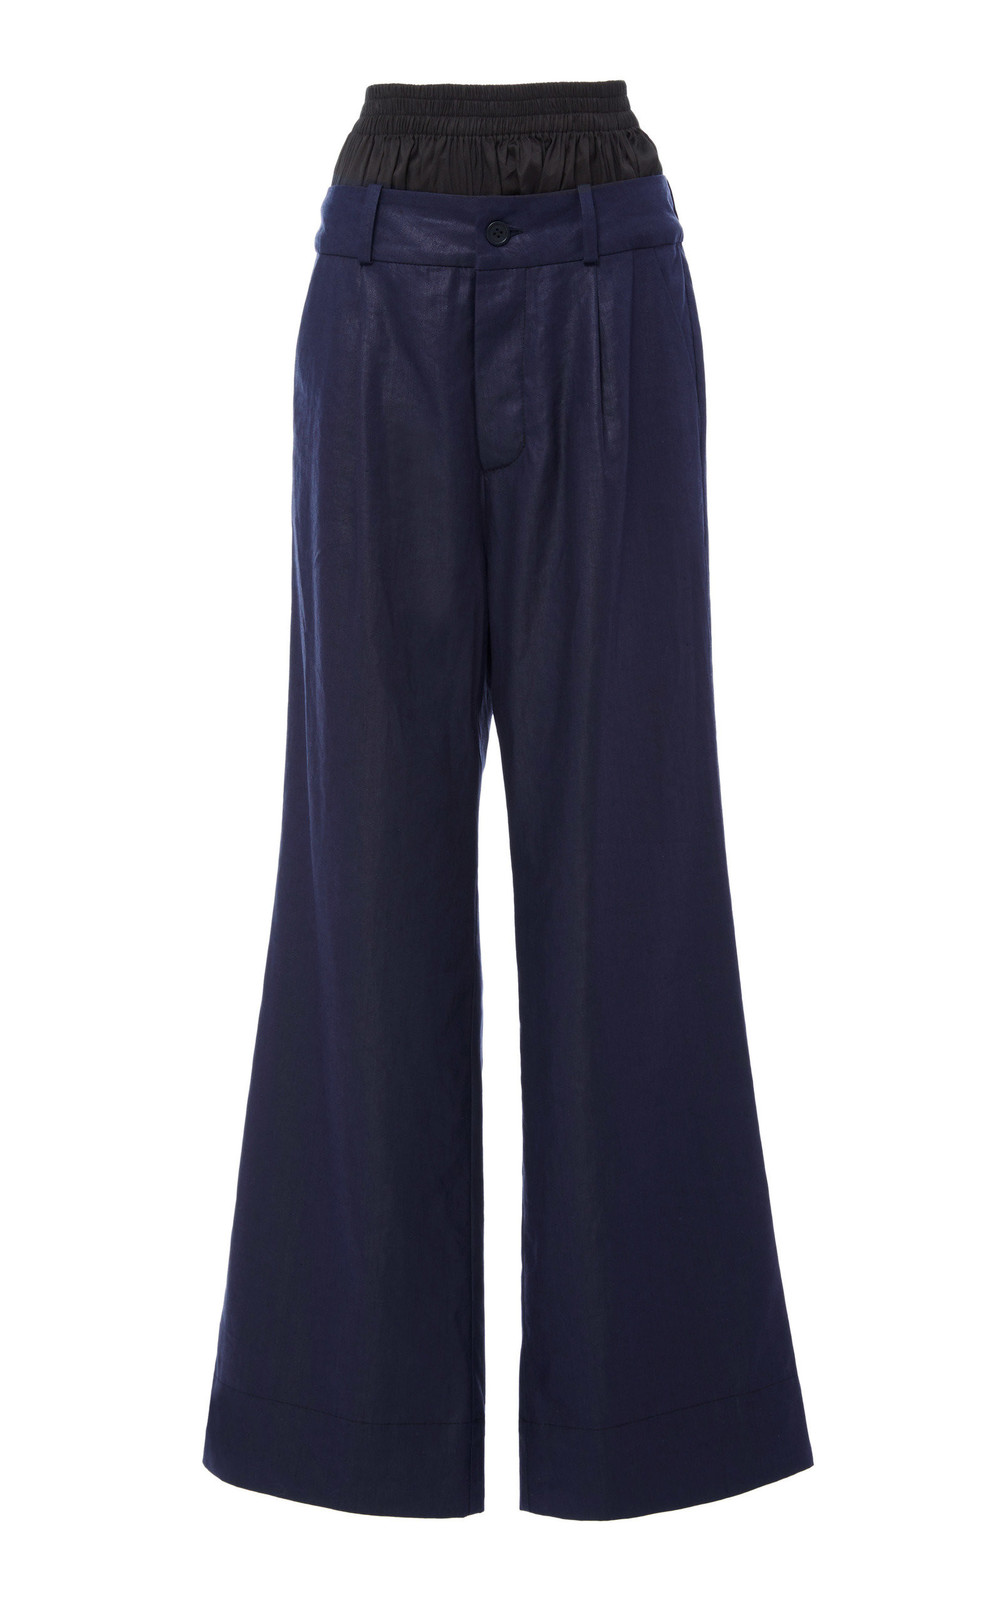 Tre by Natalie Ratabesi The Ali Pant in blue